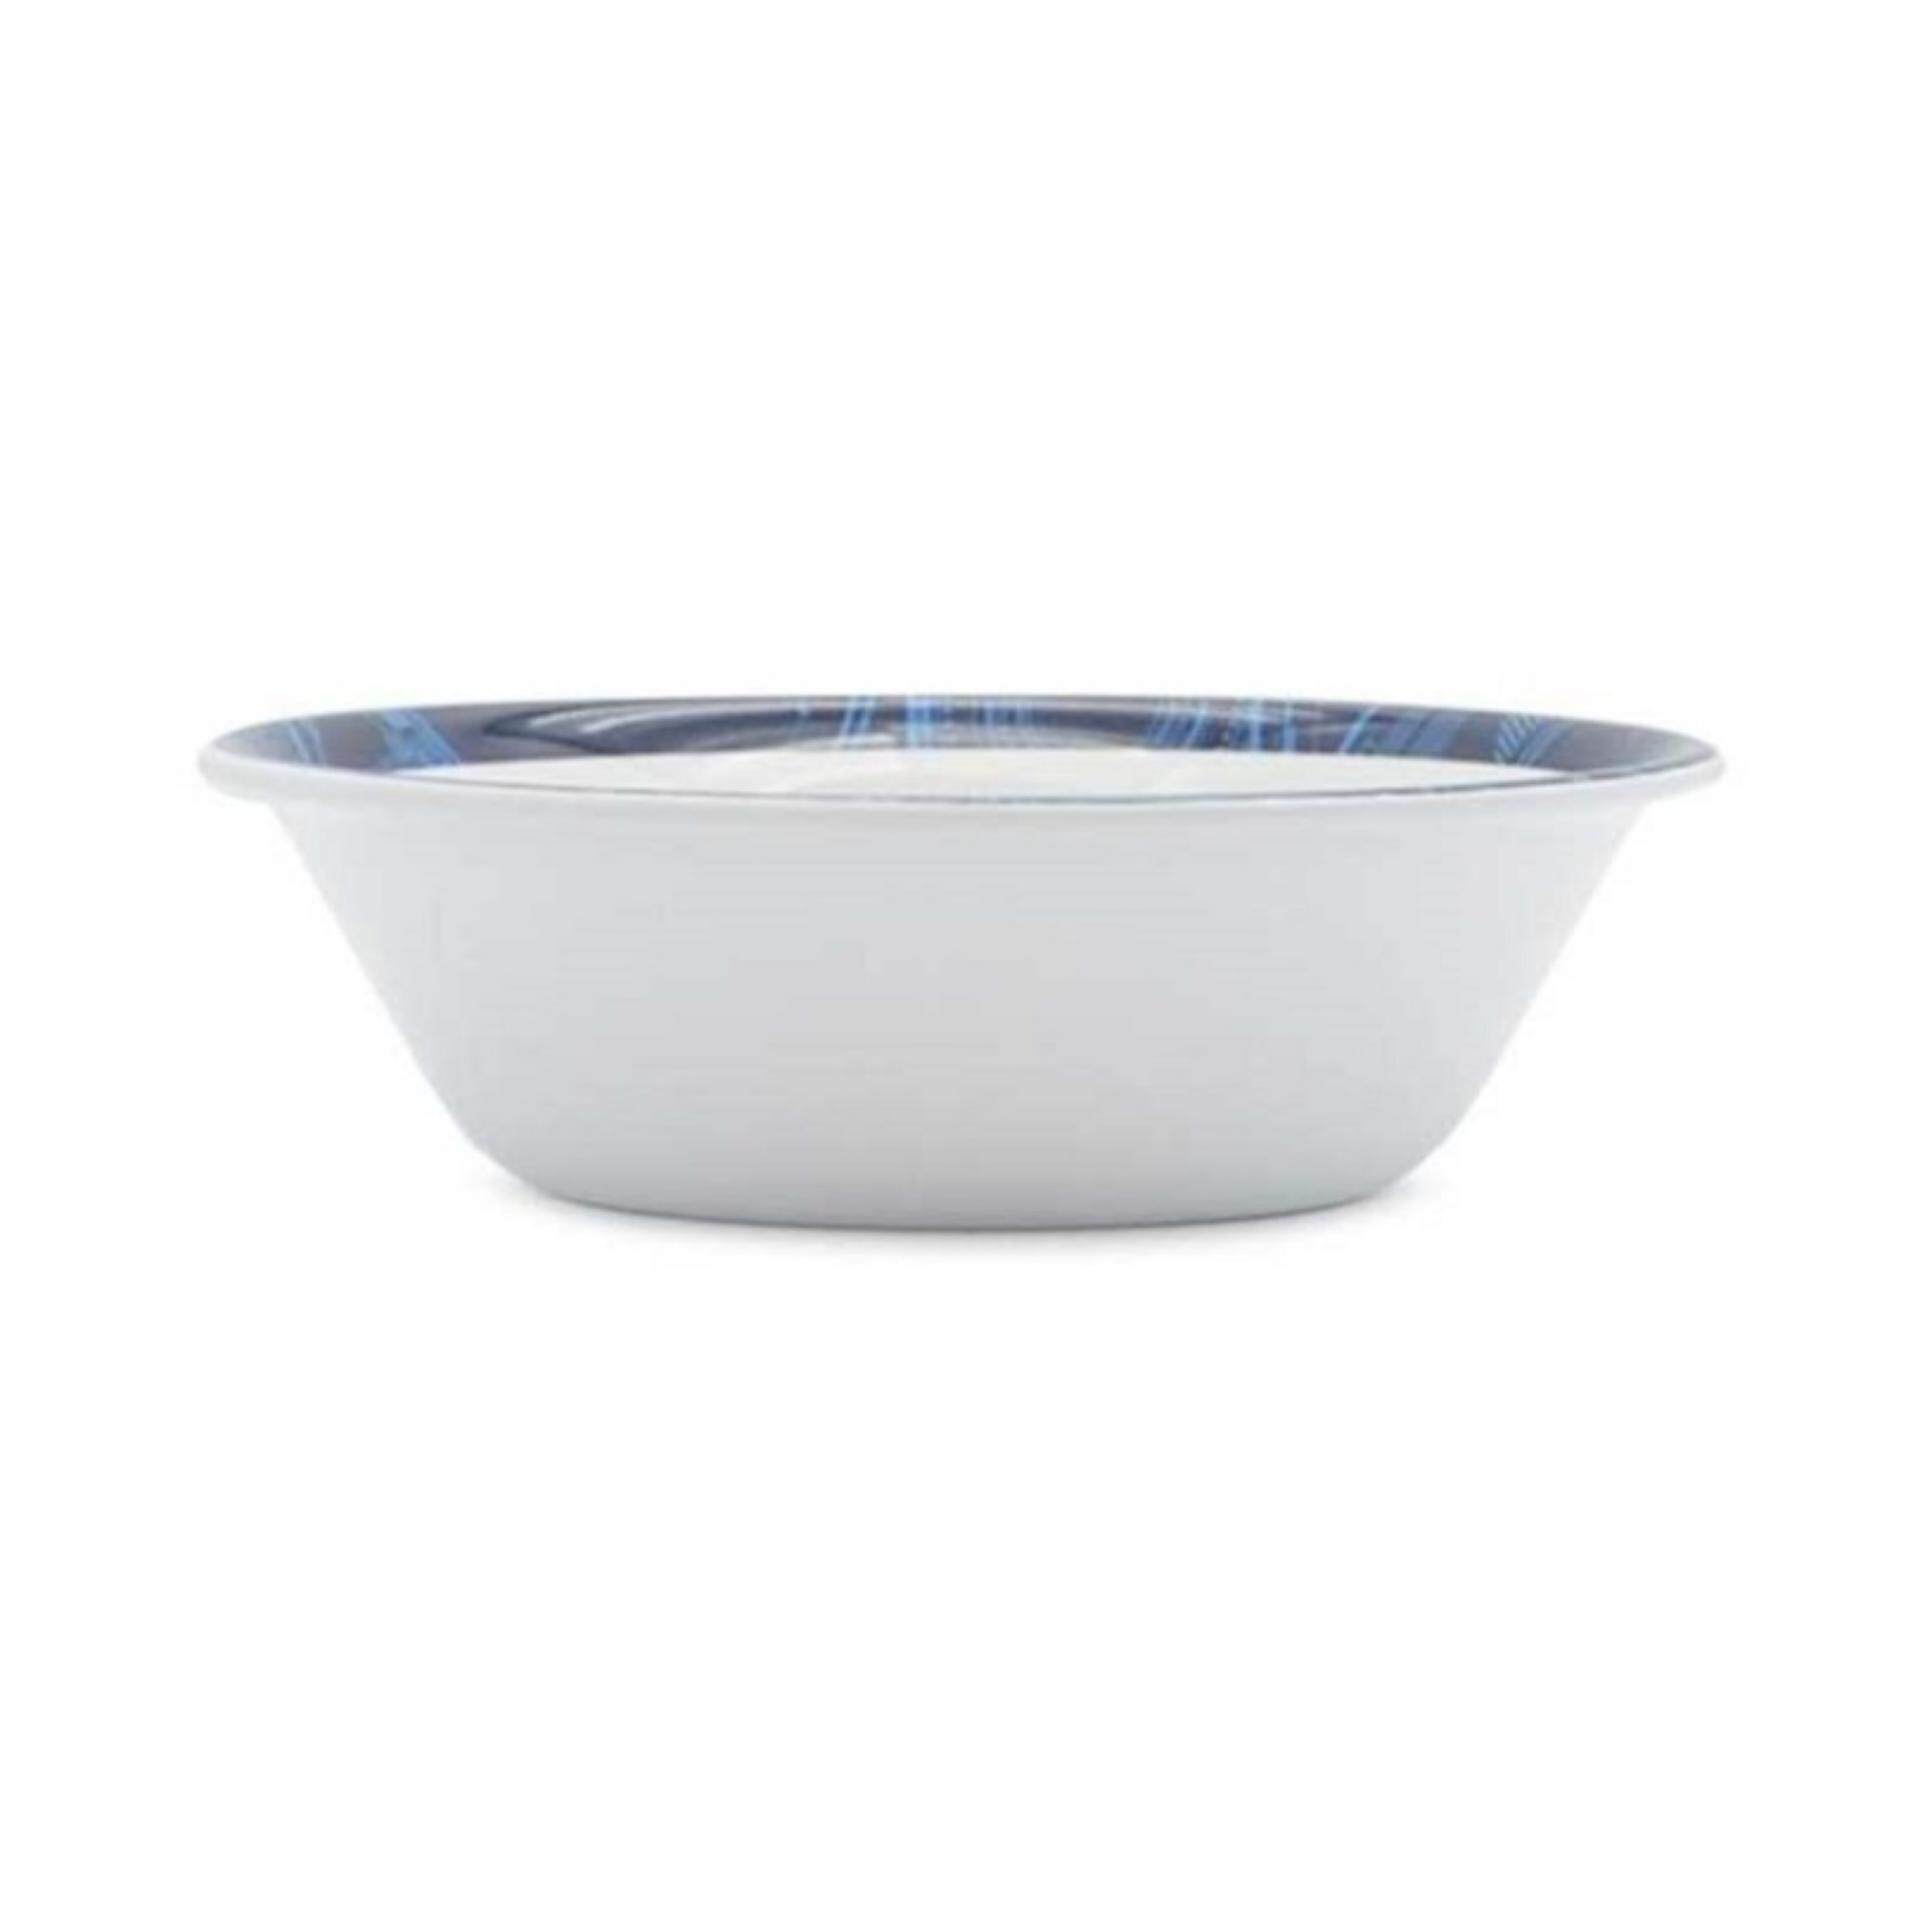 Marvel Avengers Infinity War Bowl 5.5 Inches - Blue Colour